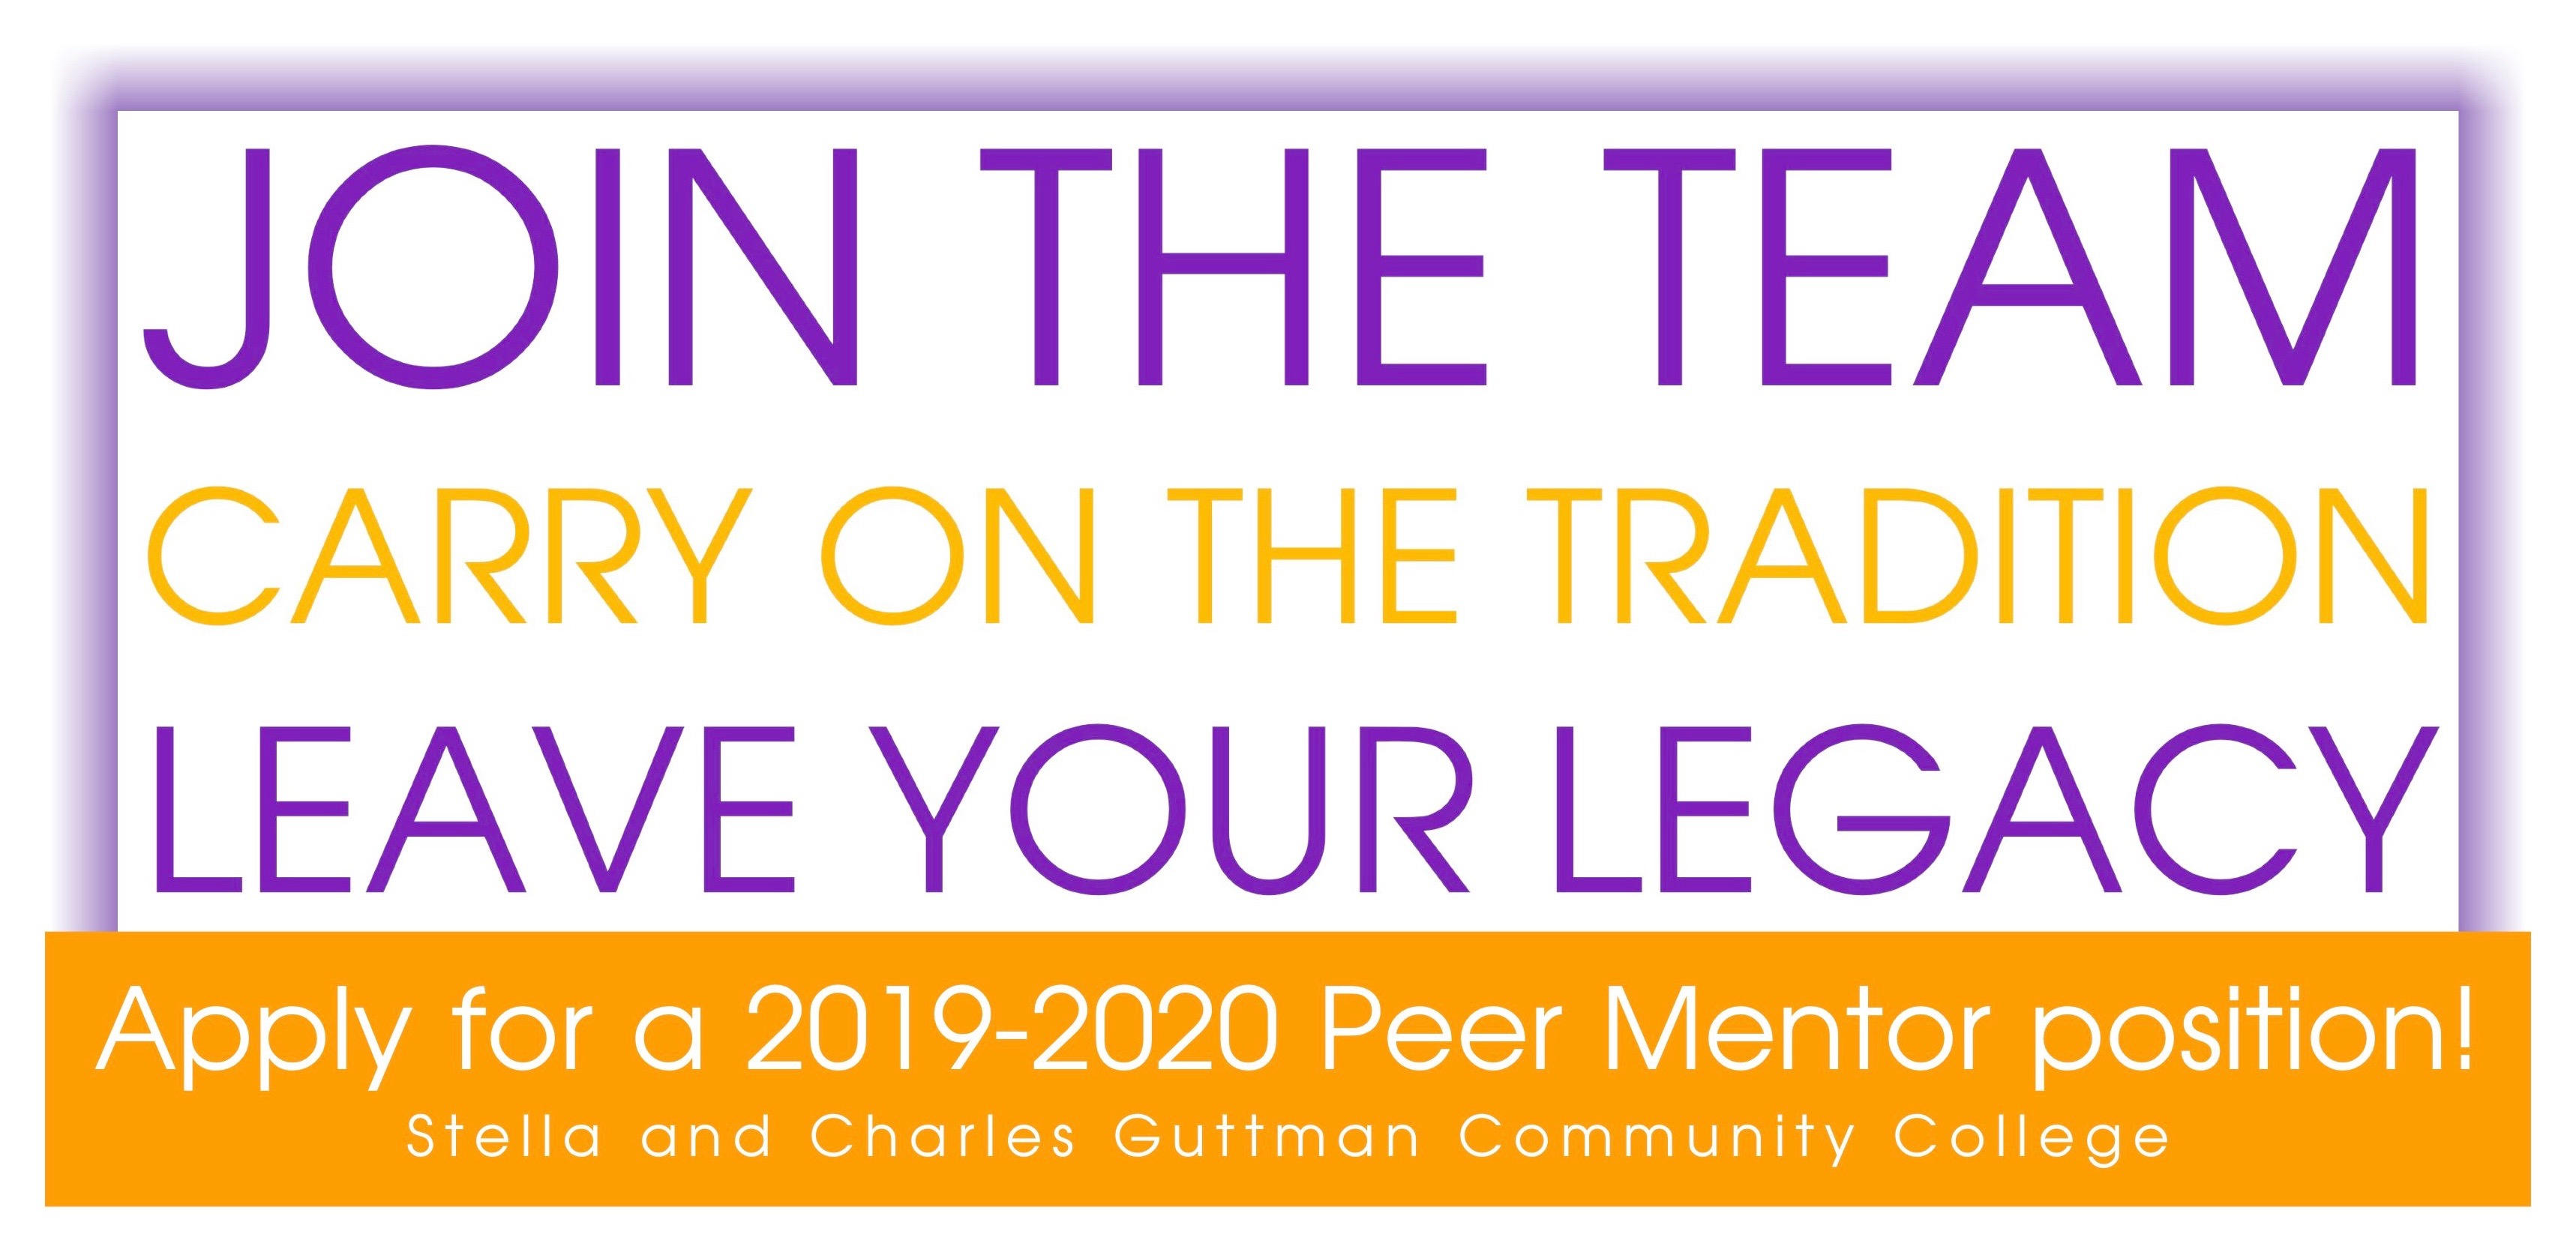 Banner: join the team, apply for a 2019-2020 Peer Mentor position